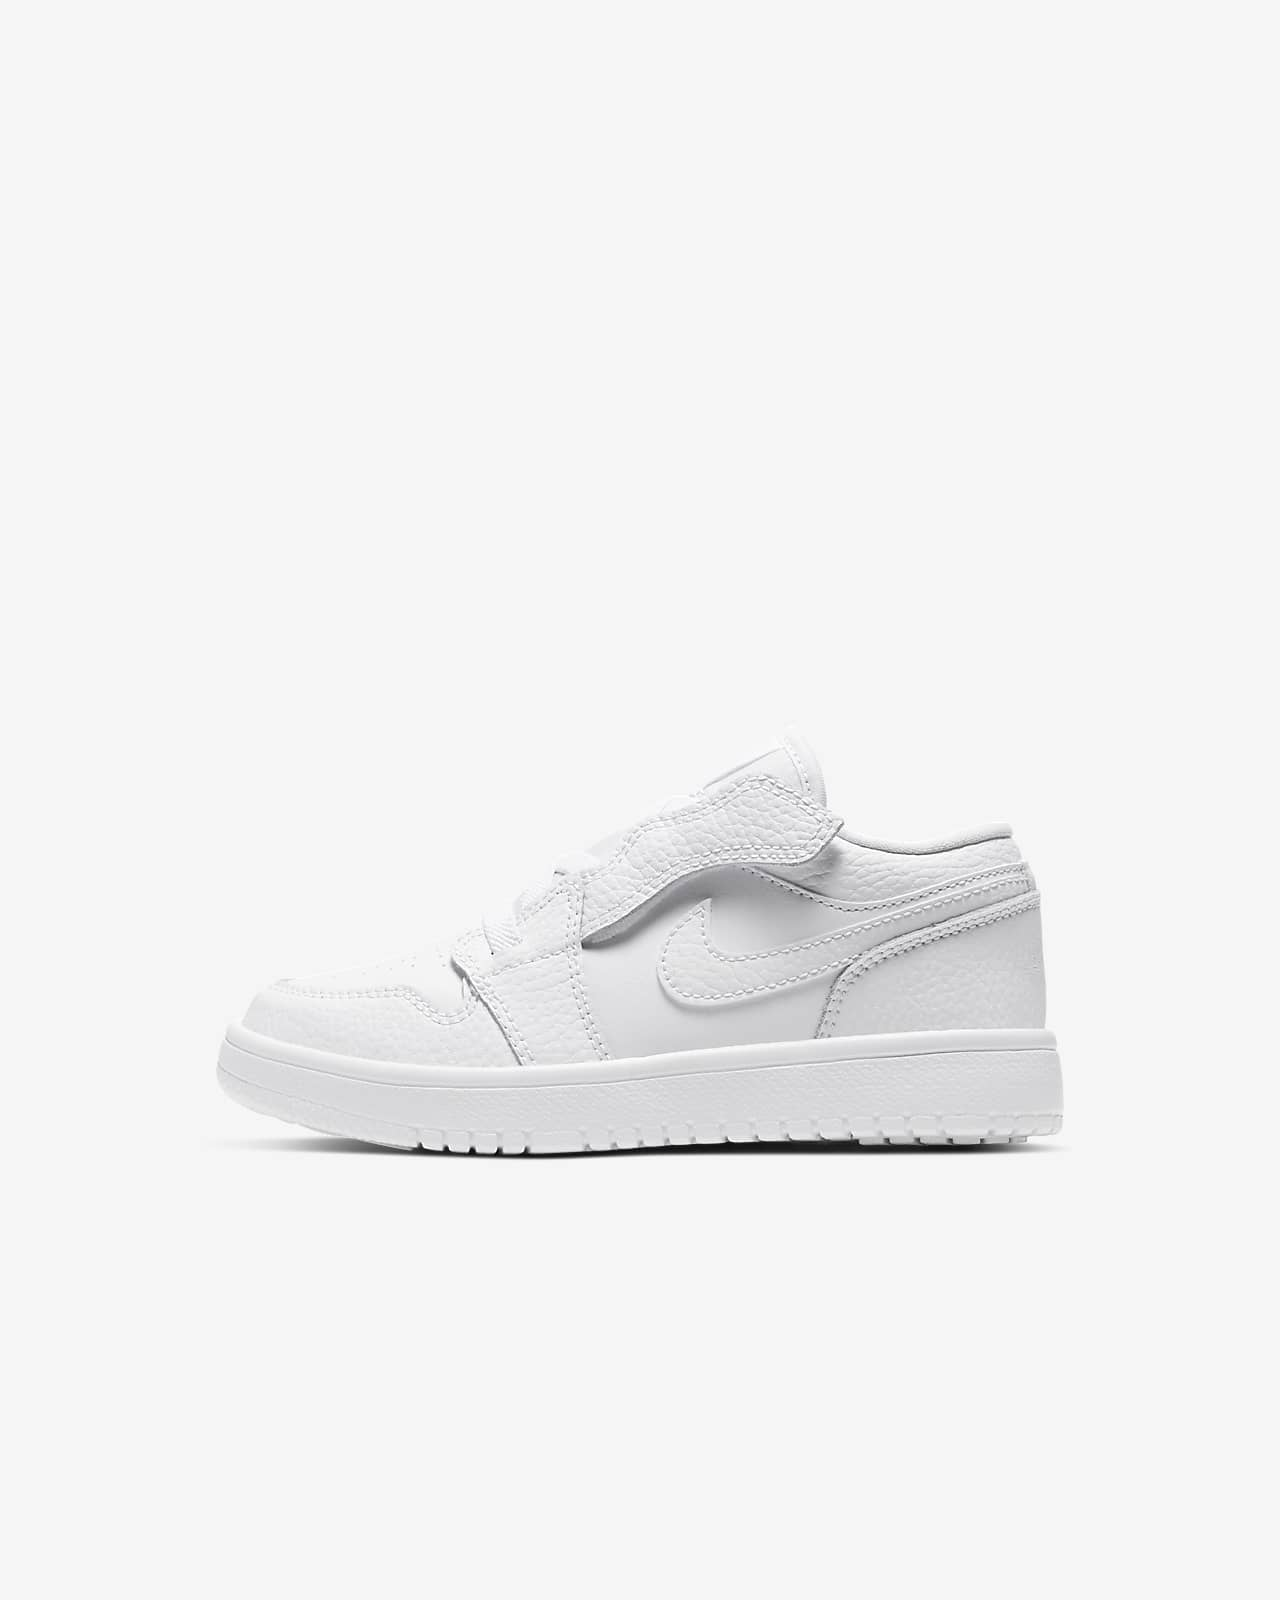 Jordan 1 Low Alt Younger Kids' Shoe